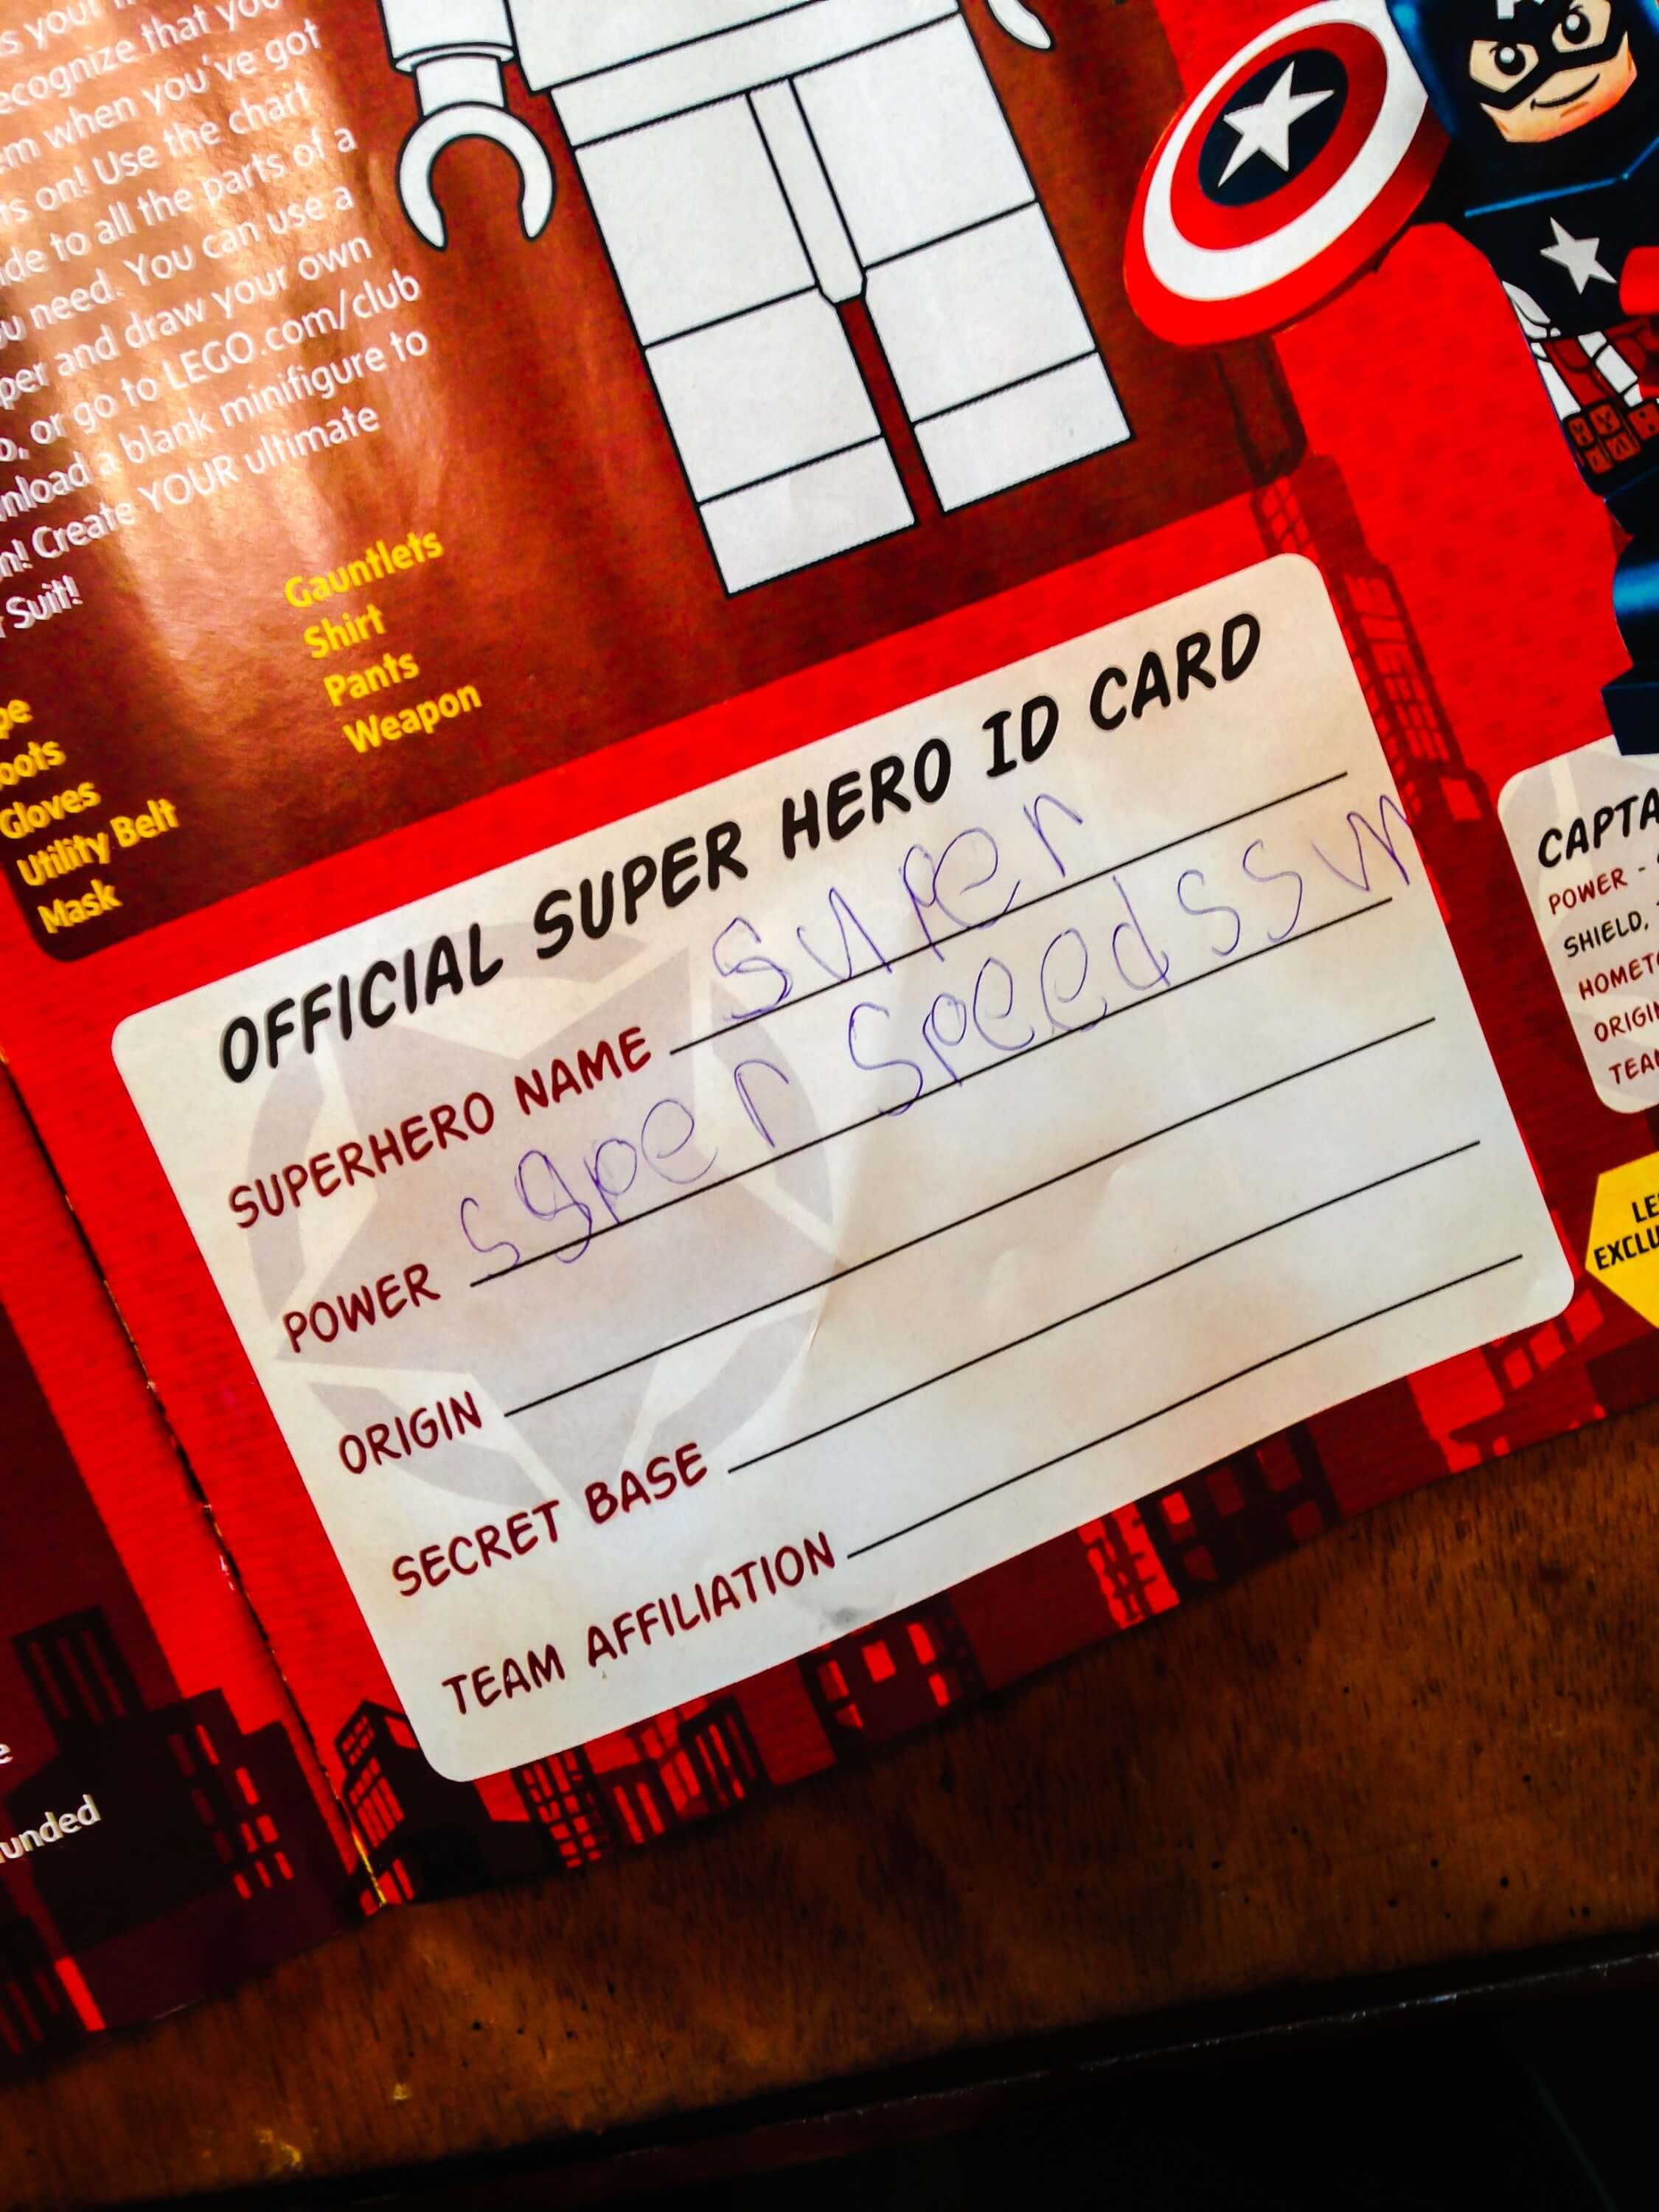 Free superhero printable - Superhero ID Card!